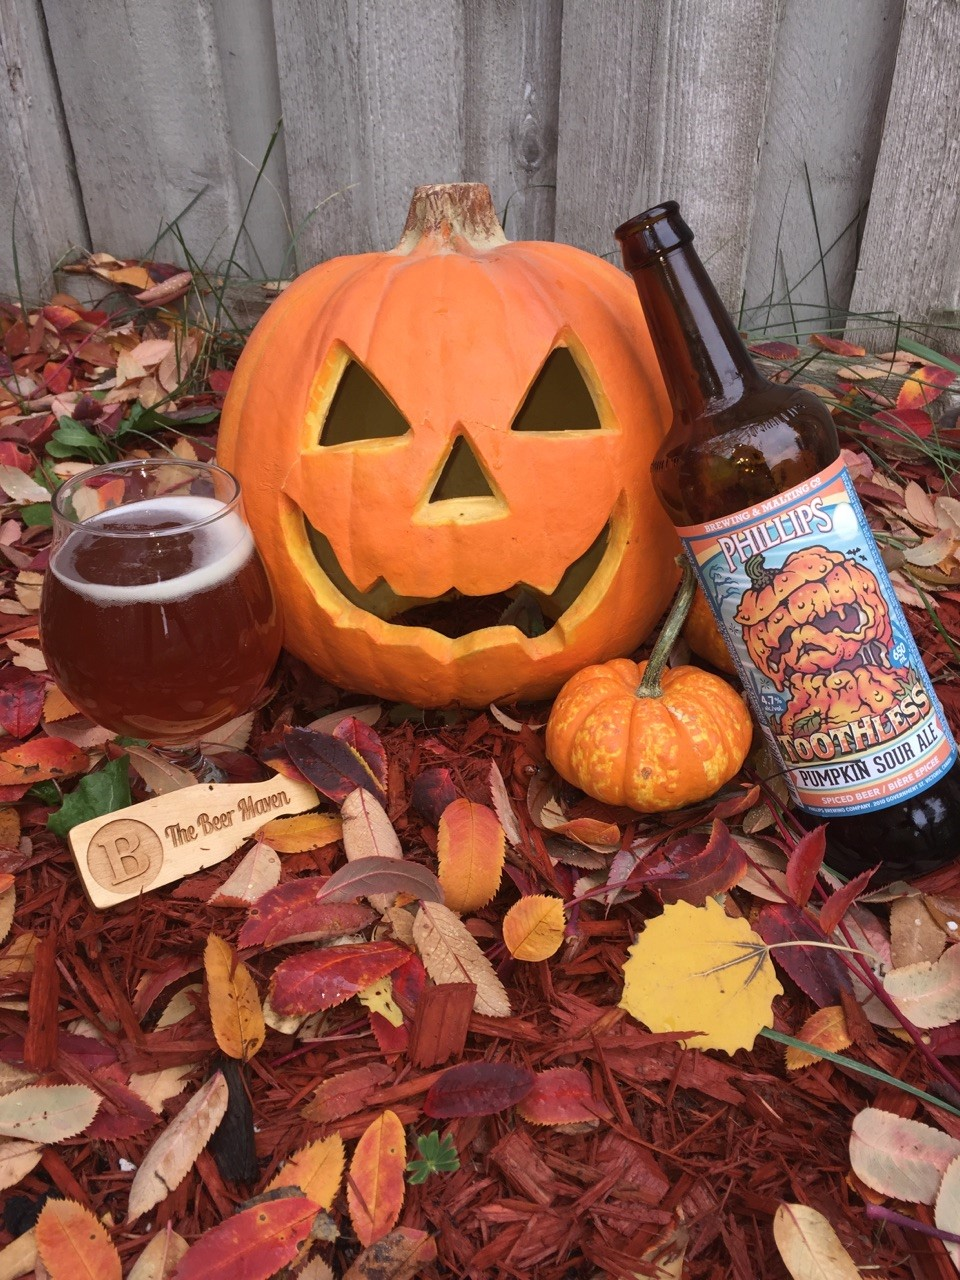 toothless-pumpkin-sour-ale